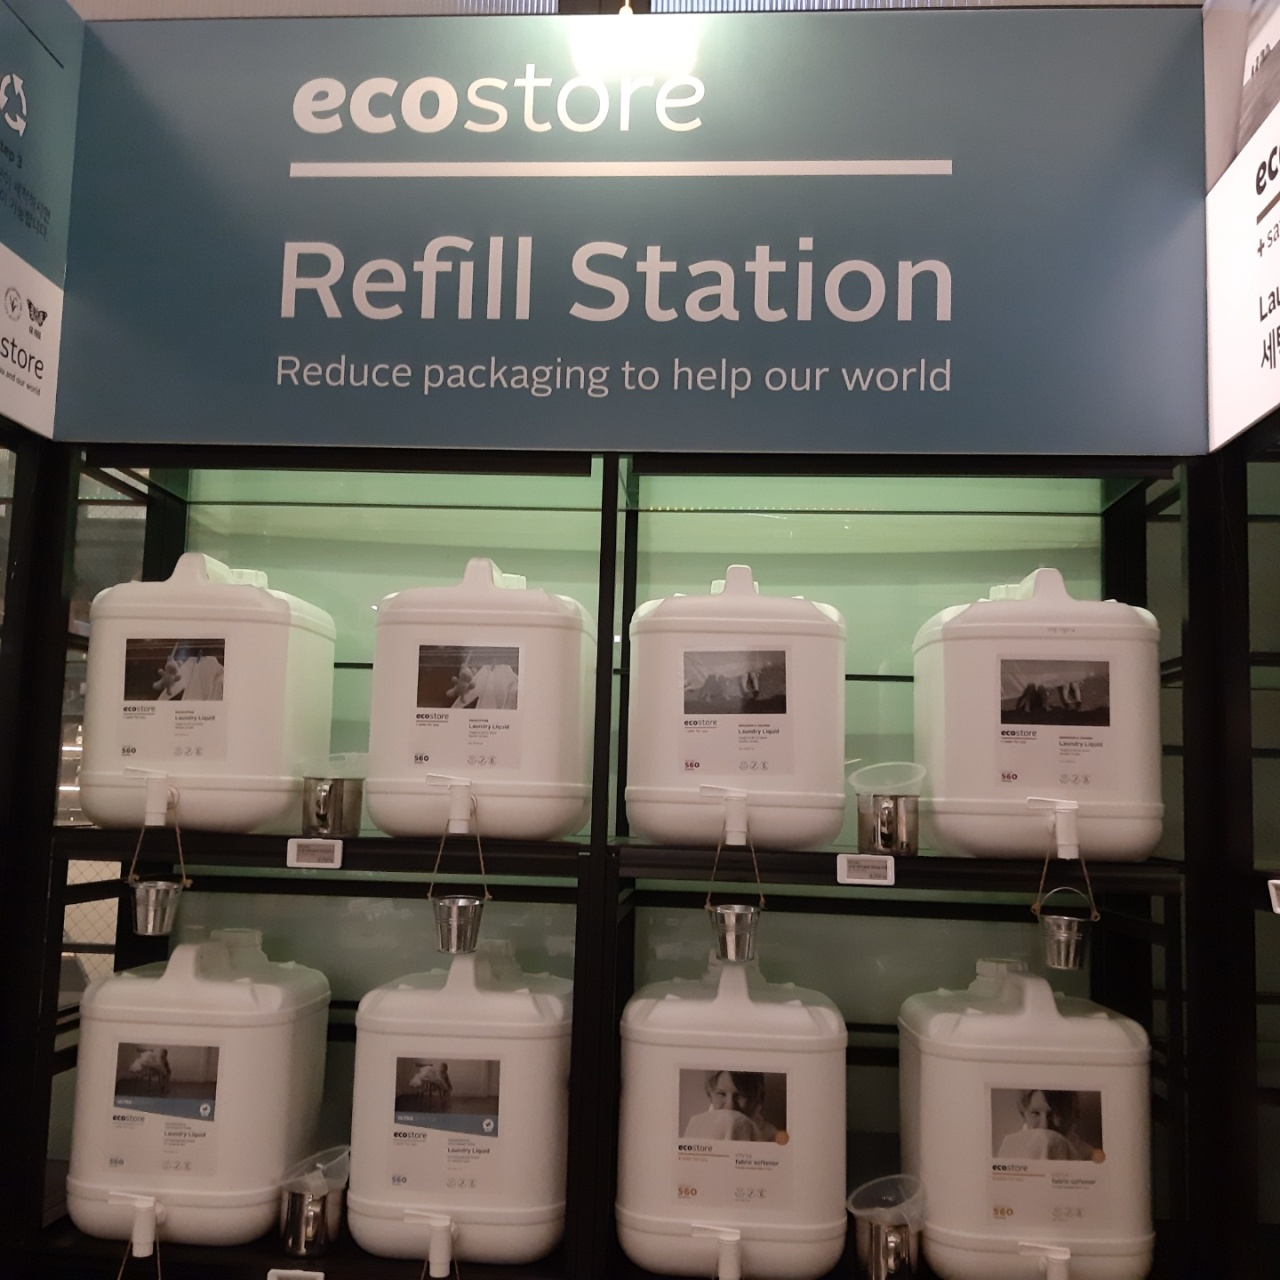 Shinsegae Department Store operates a refill station in partnership with New Zealand-based eco-friendly detergent brand Ecostore to sell refillable laundry detergent and fabric softener. (Shin Ji-hye/The Korea Herald)